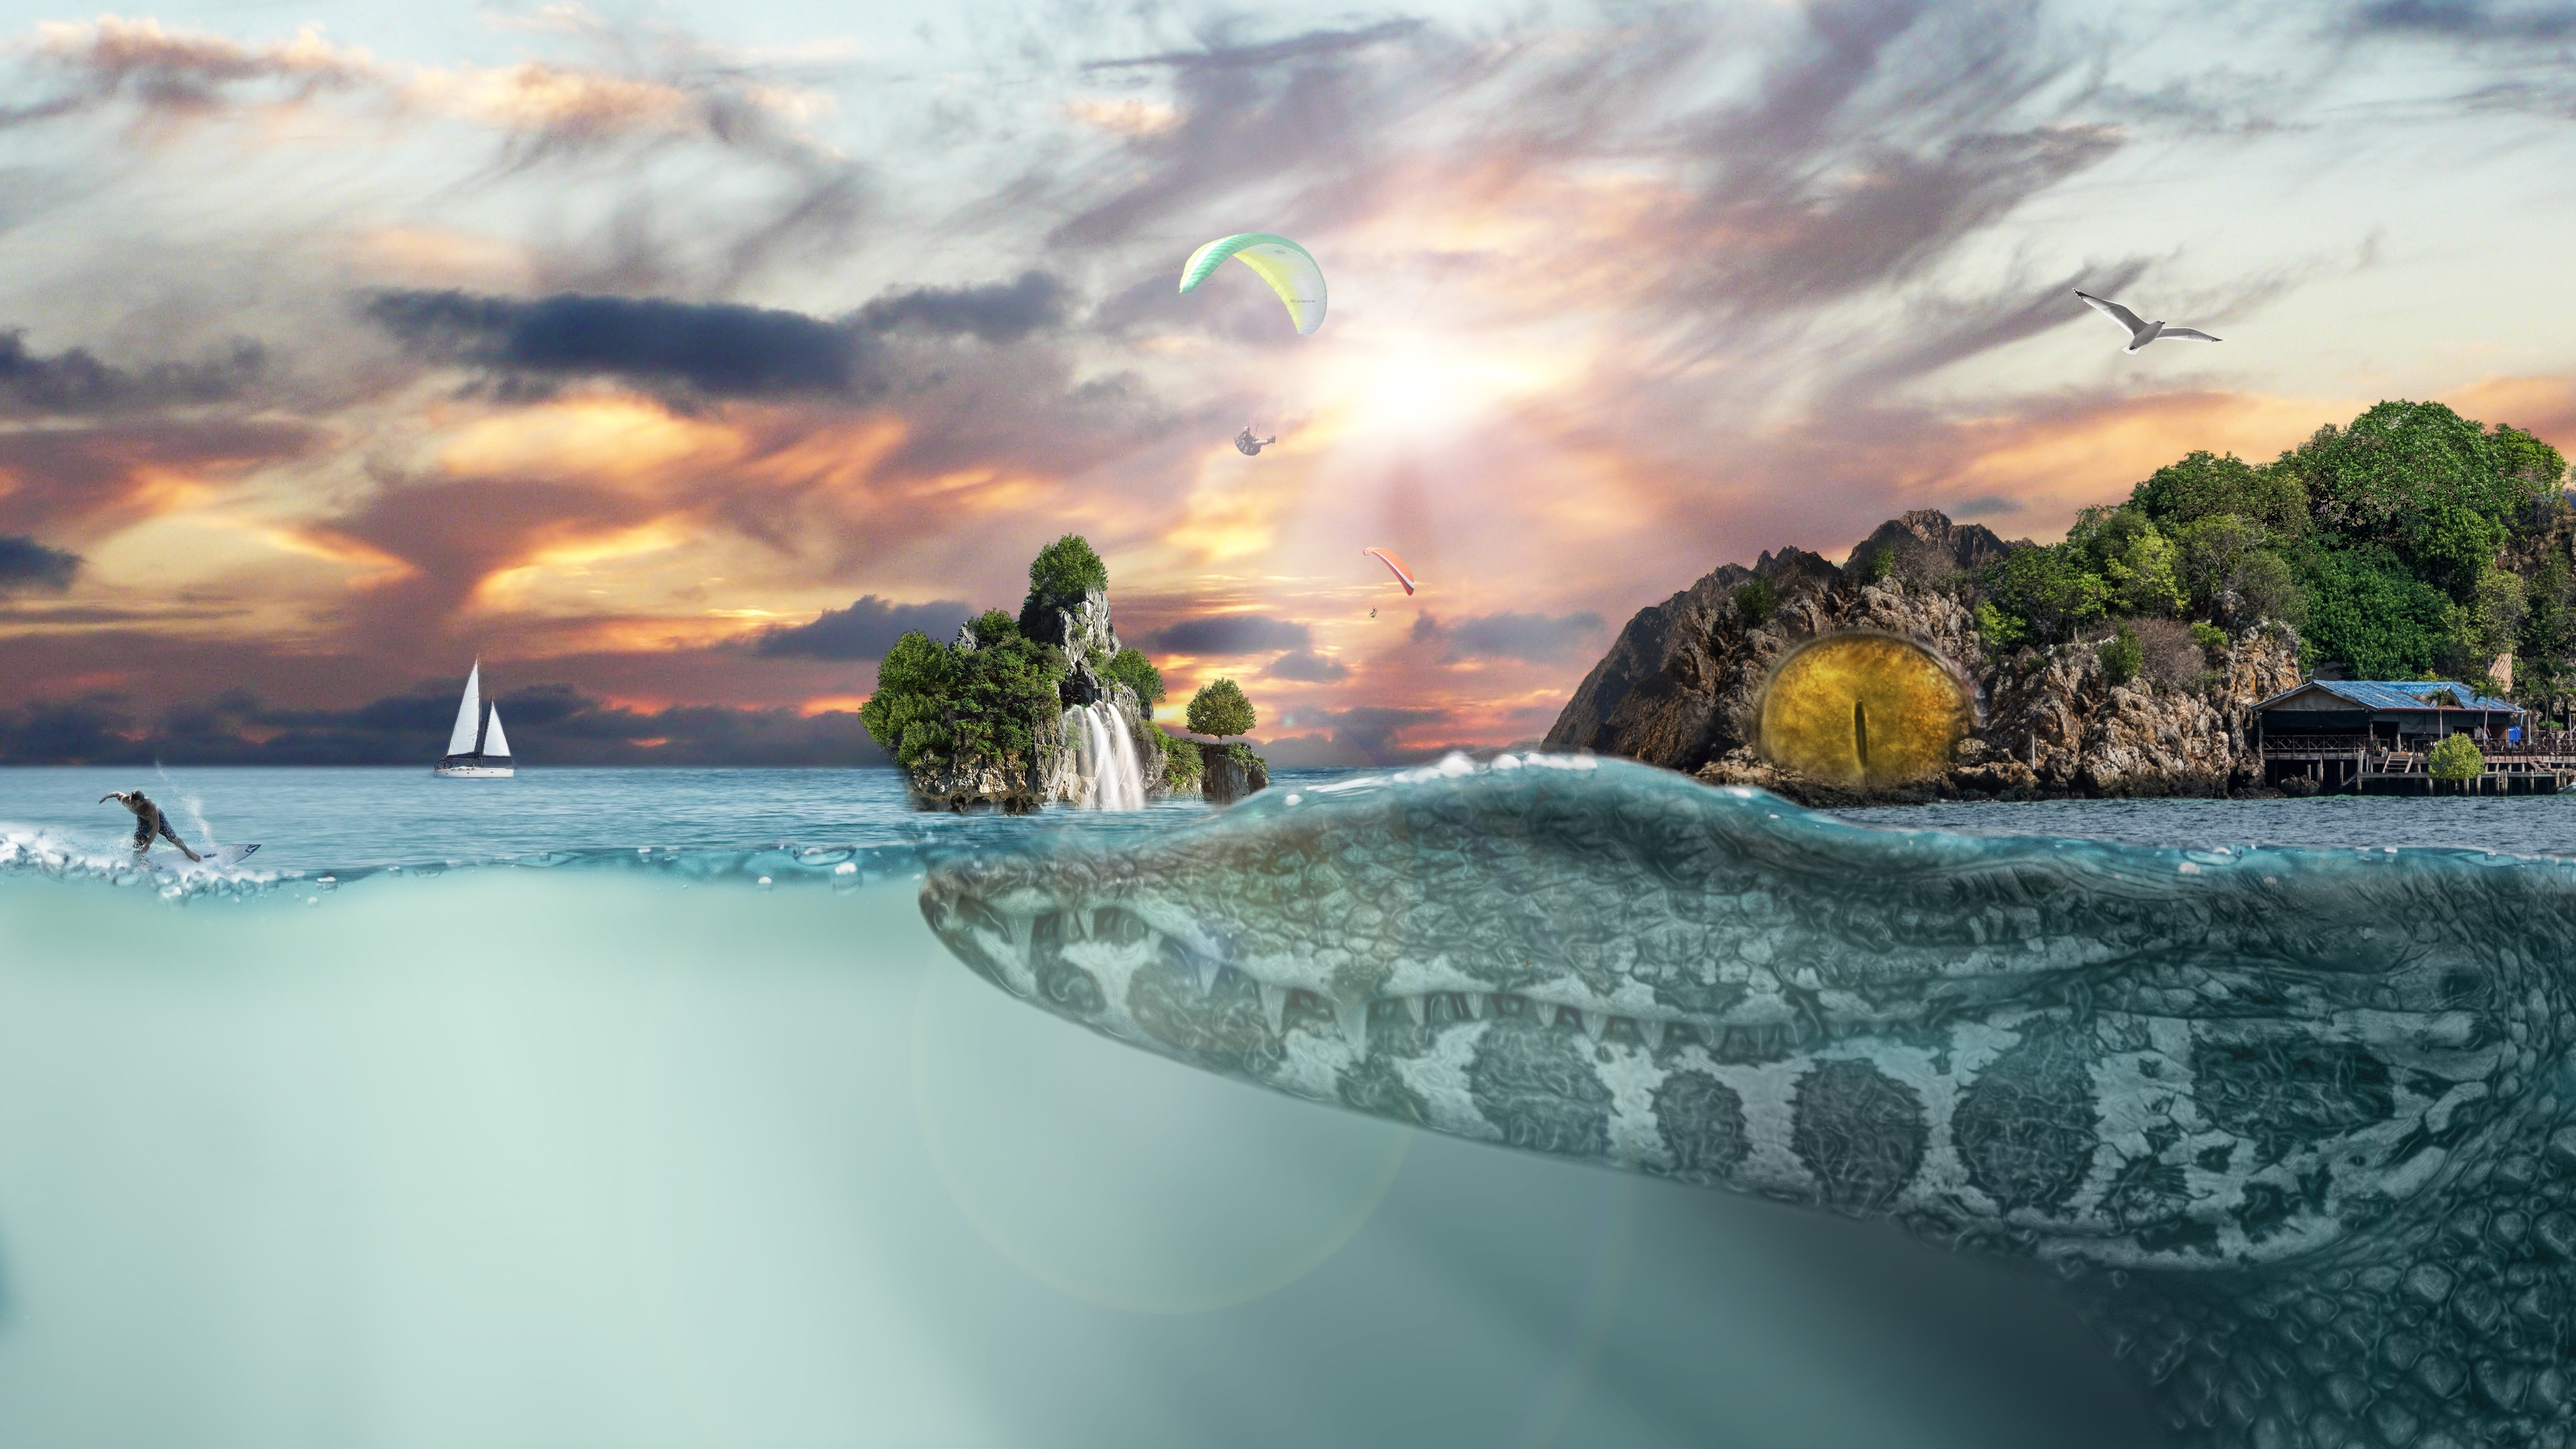 Creative Detailed Hd Fantasy Wallpapers: Sea Island Fantasy, HD Creative, 4k Wallpapers, Images